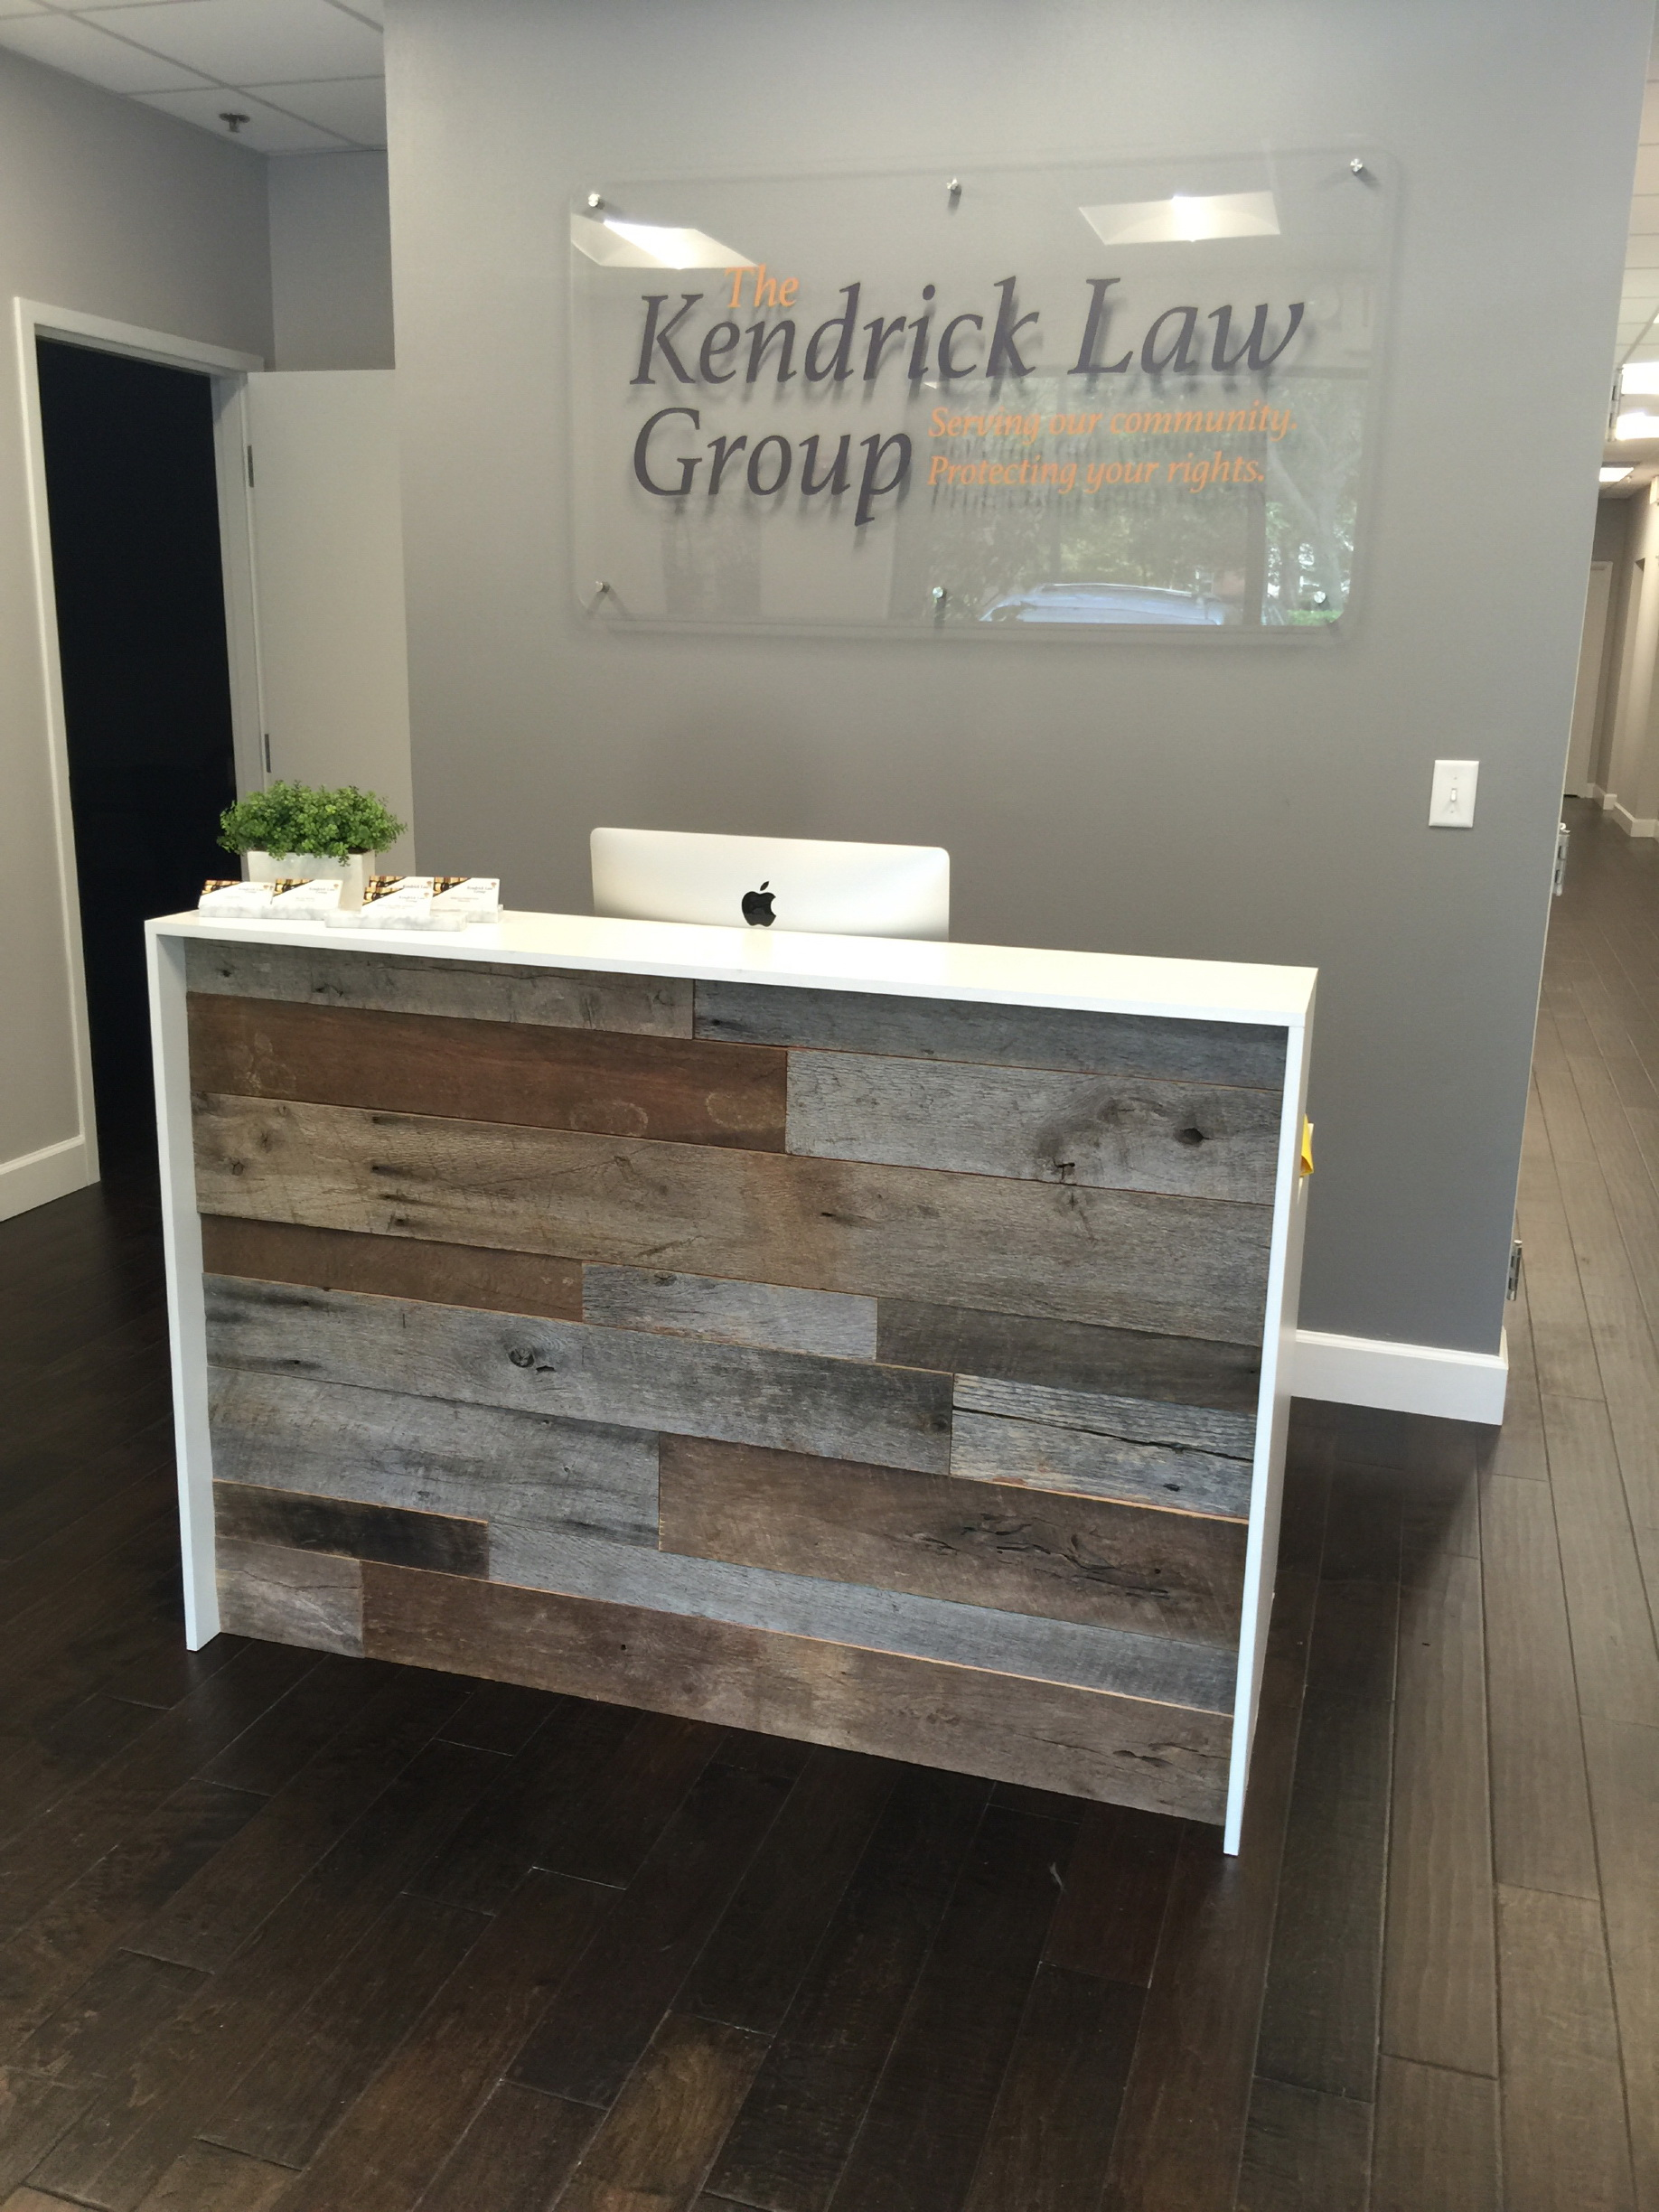 Kendrick Law Group S Reception Desk Fama Creations